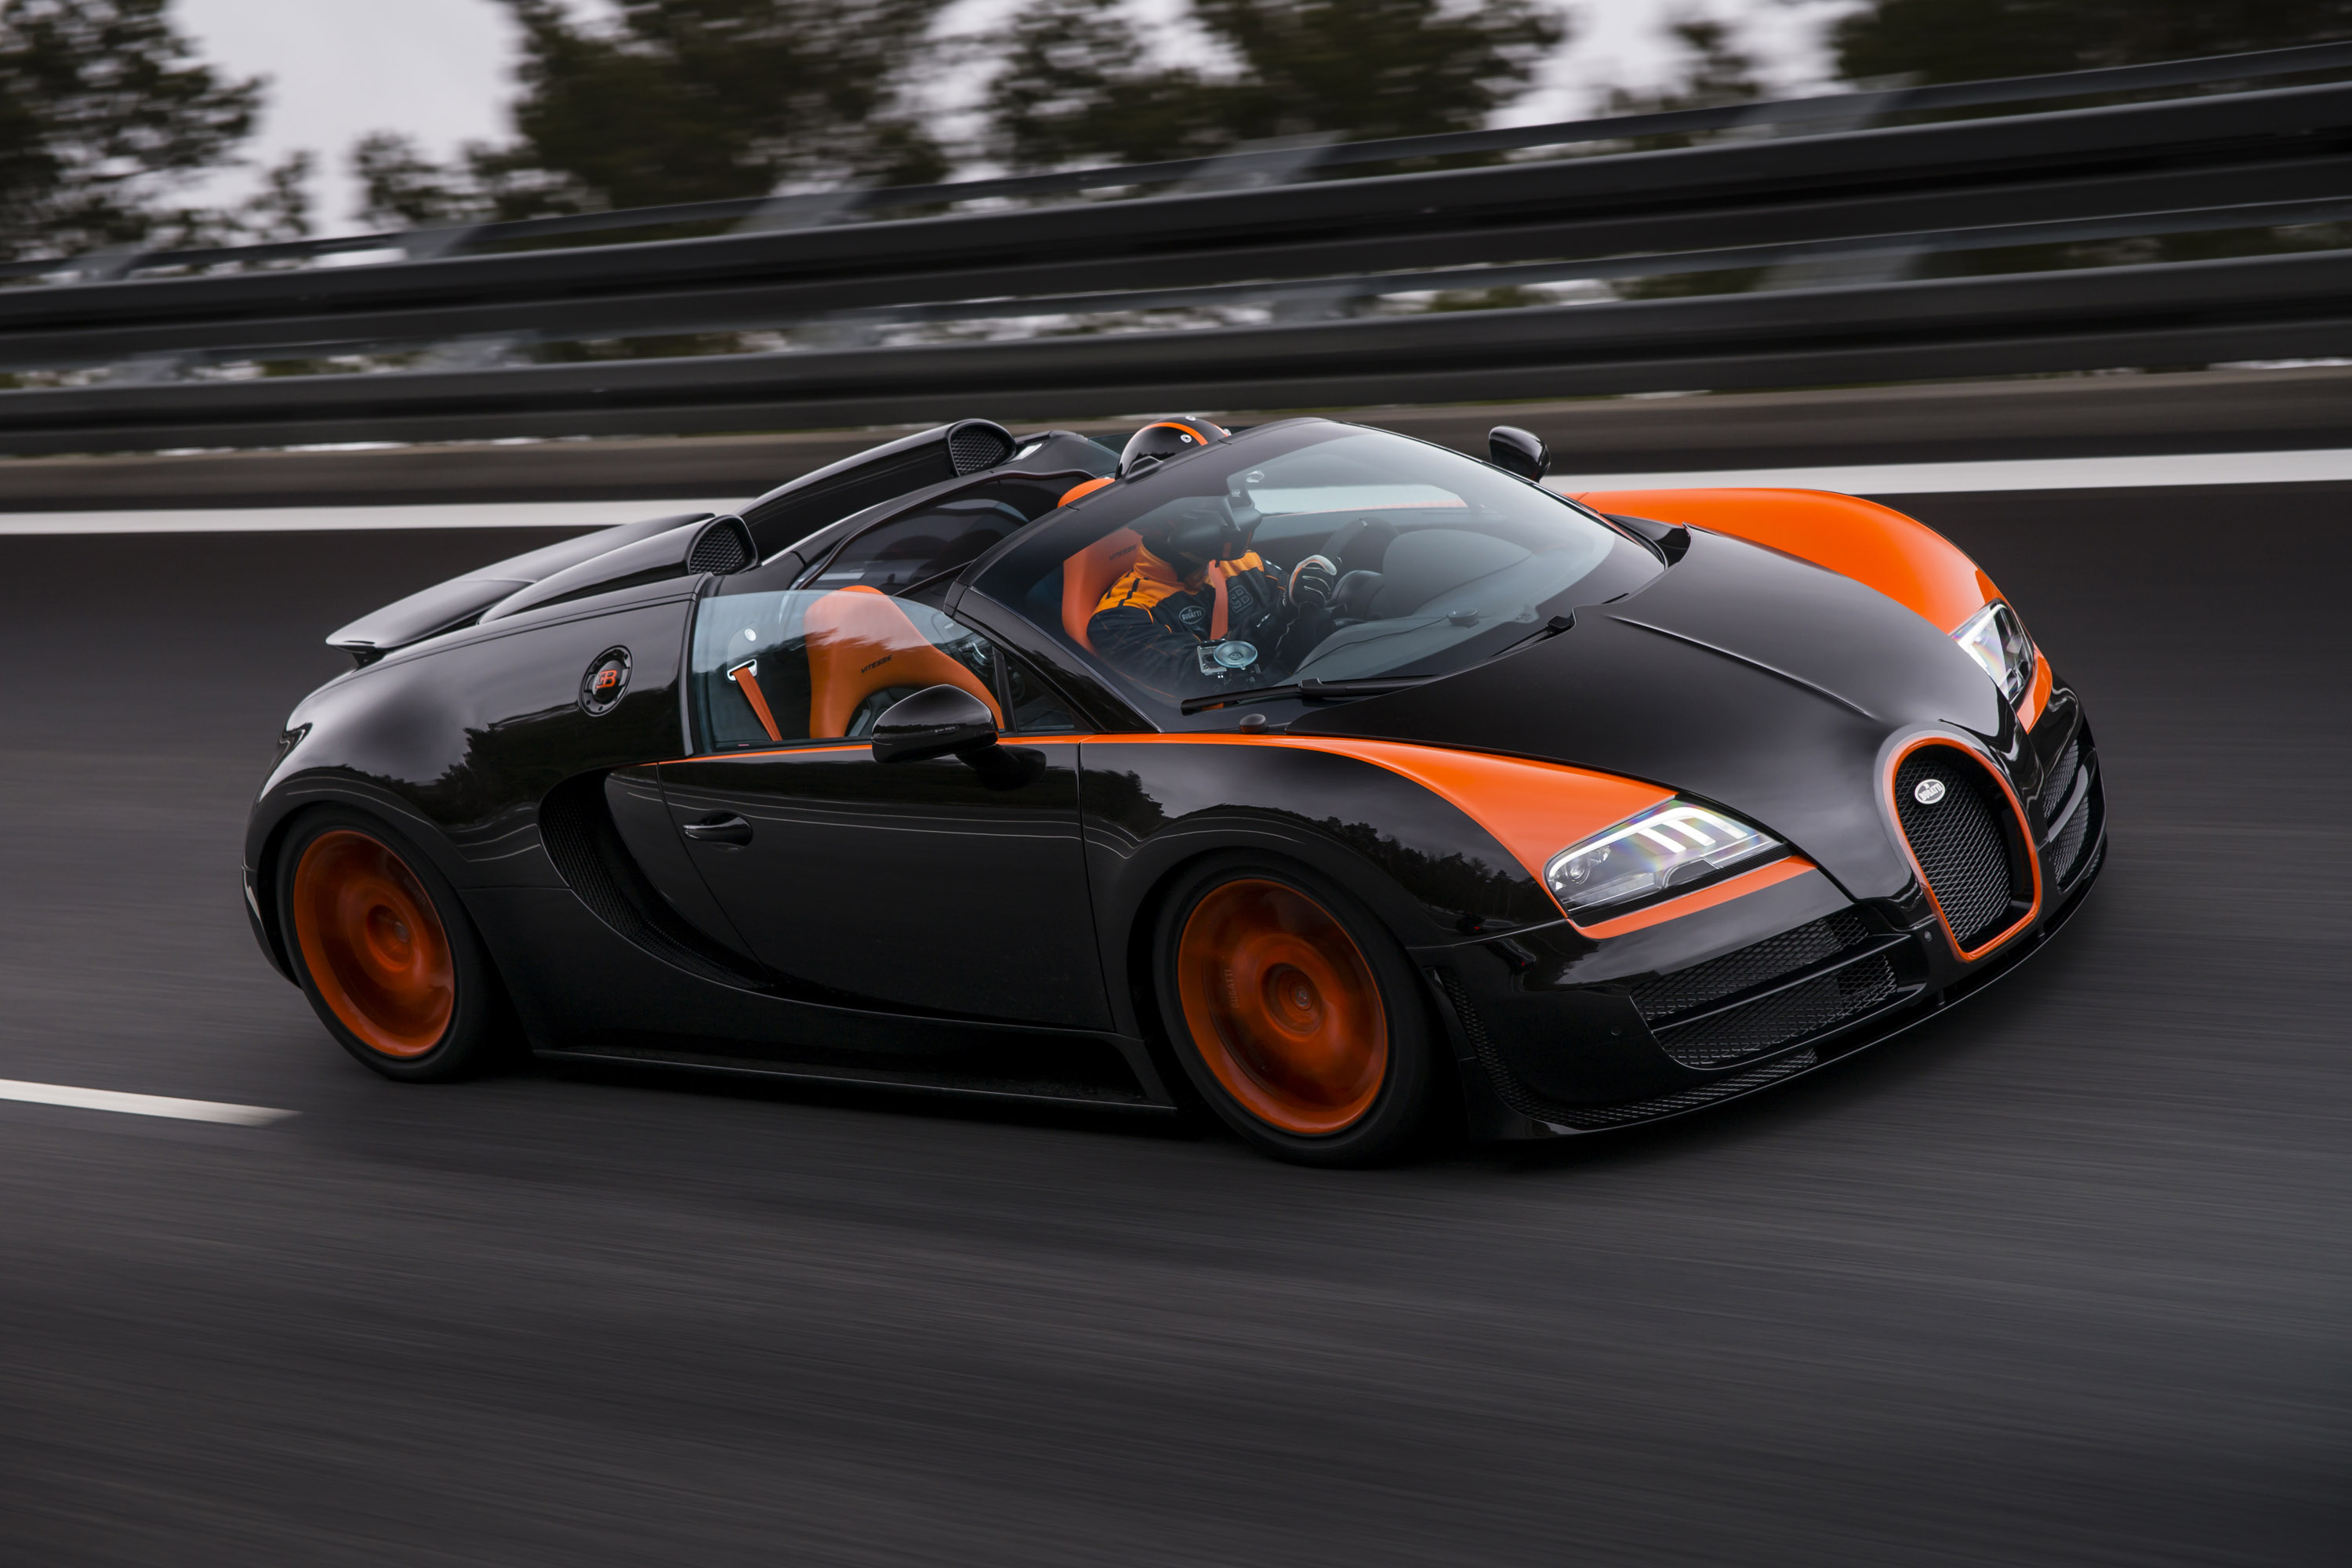 bugatti-veyron-grand-sport-vitesse-world-record-car-edition-01 Cozy Bugatti Veyron Rembrandt Edition Price Cars Trend